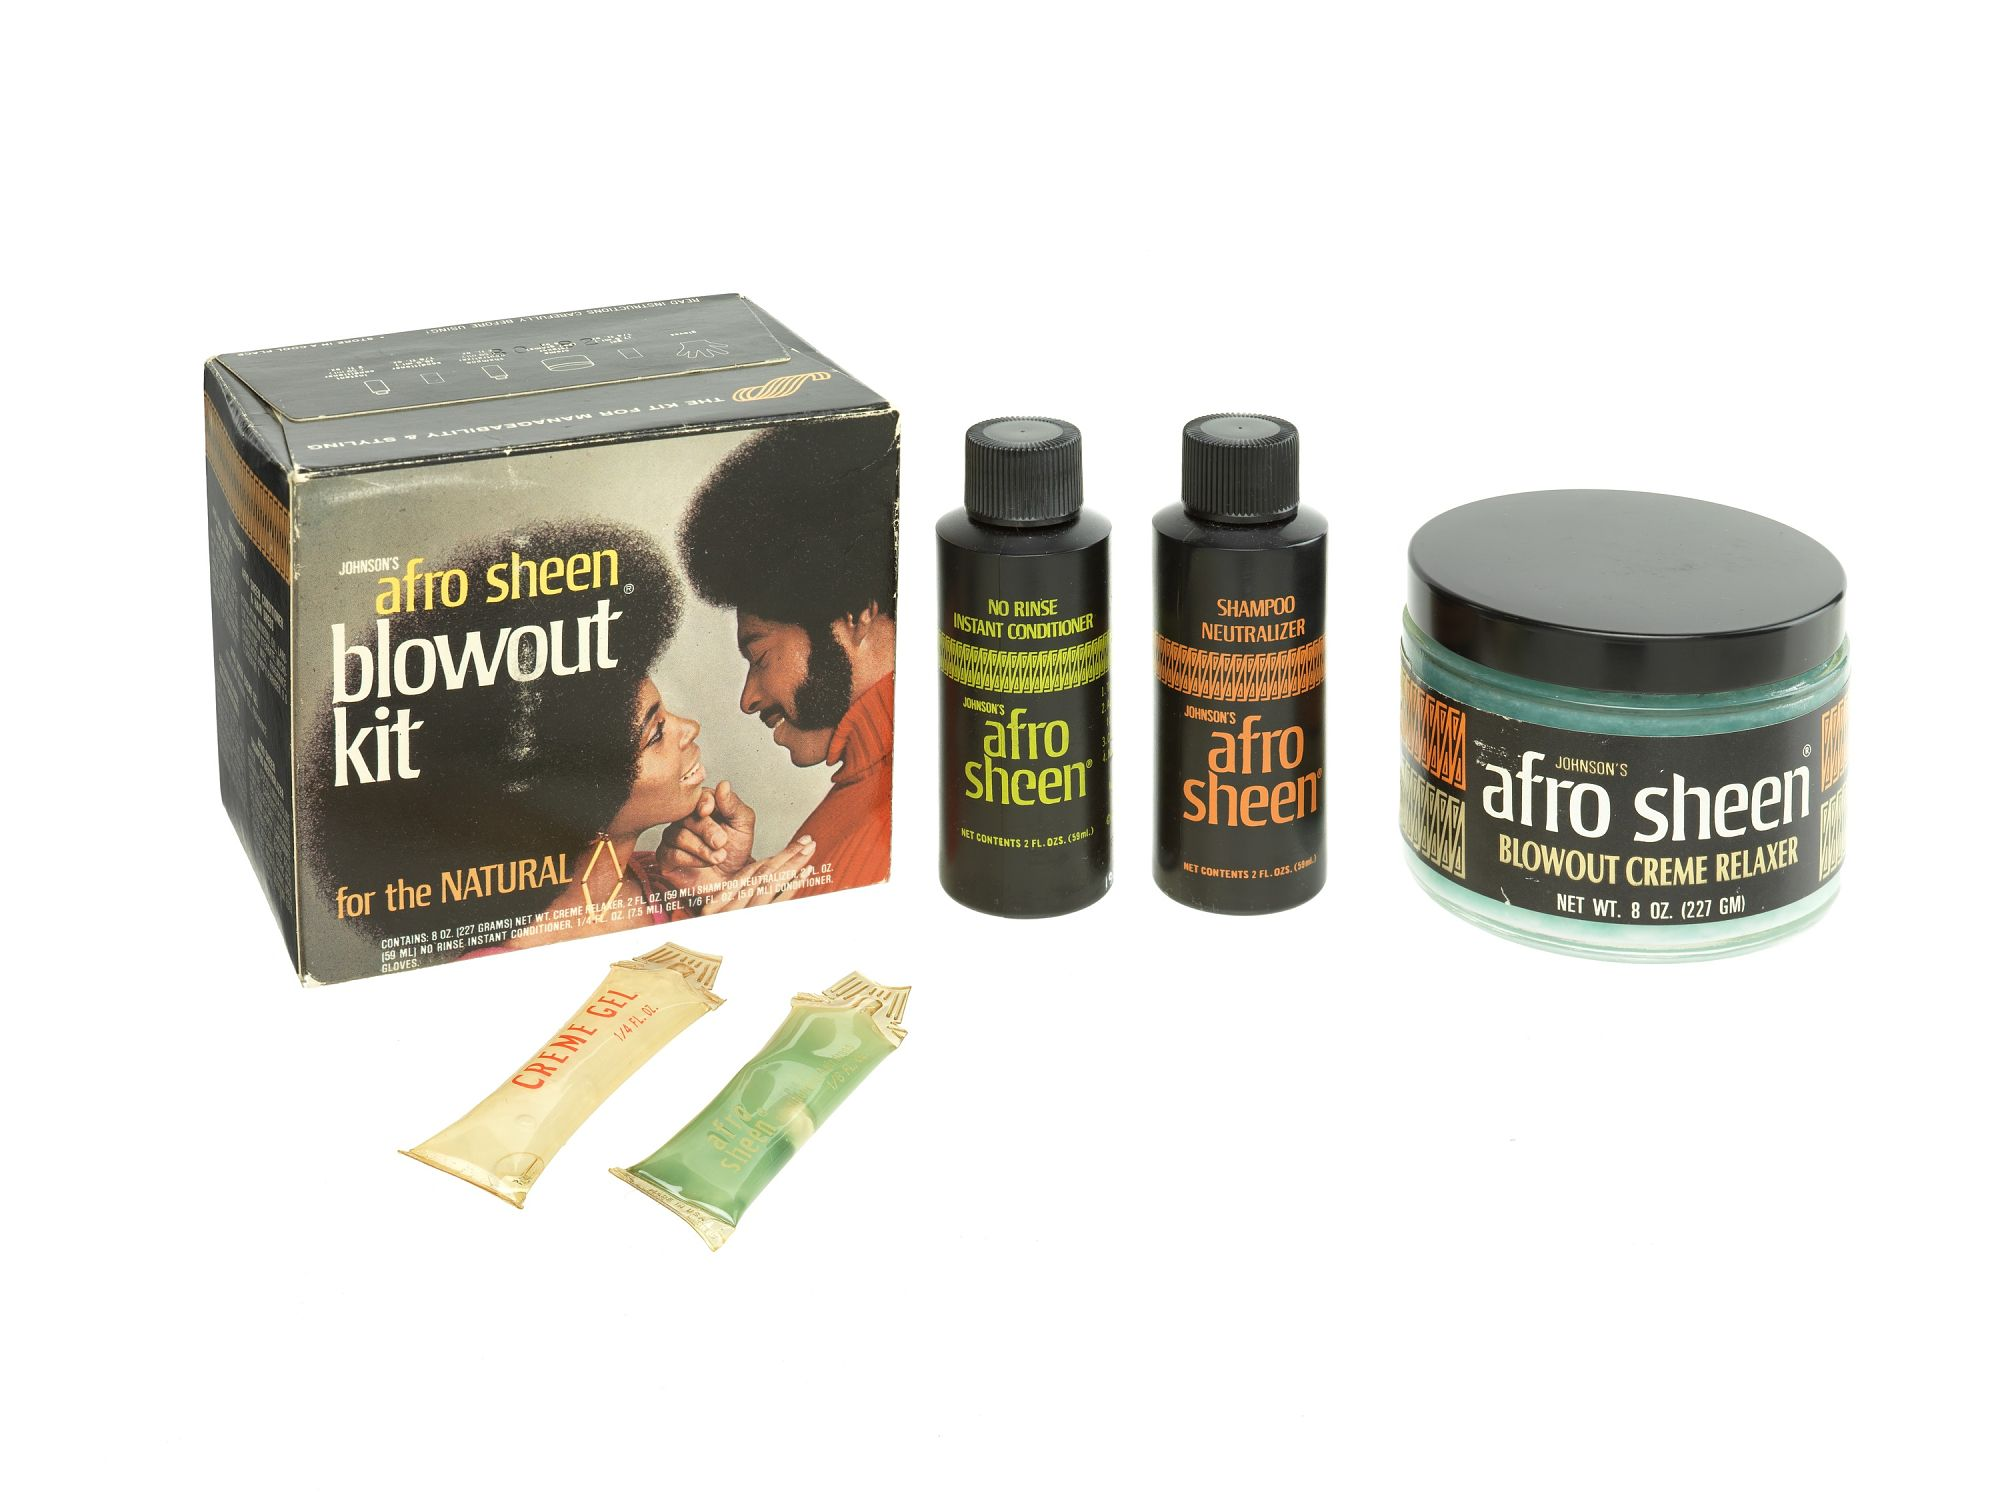 Johnson's Afro Sheen Blowout Kit for the Natural Black